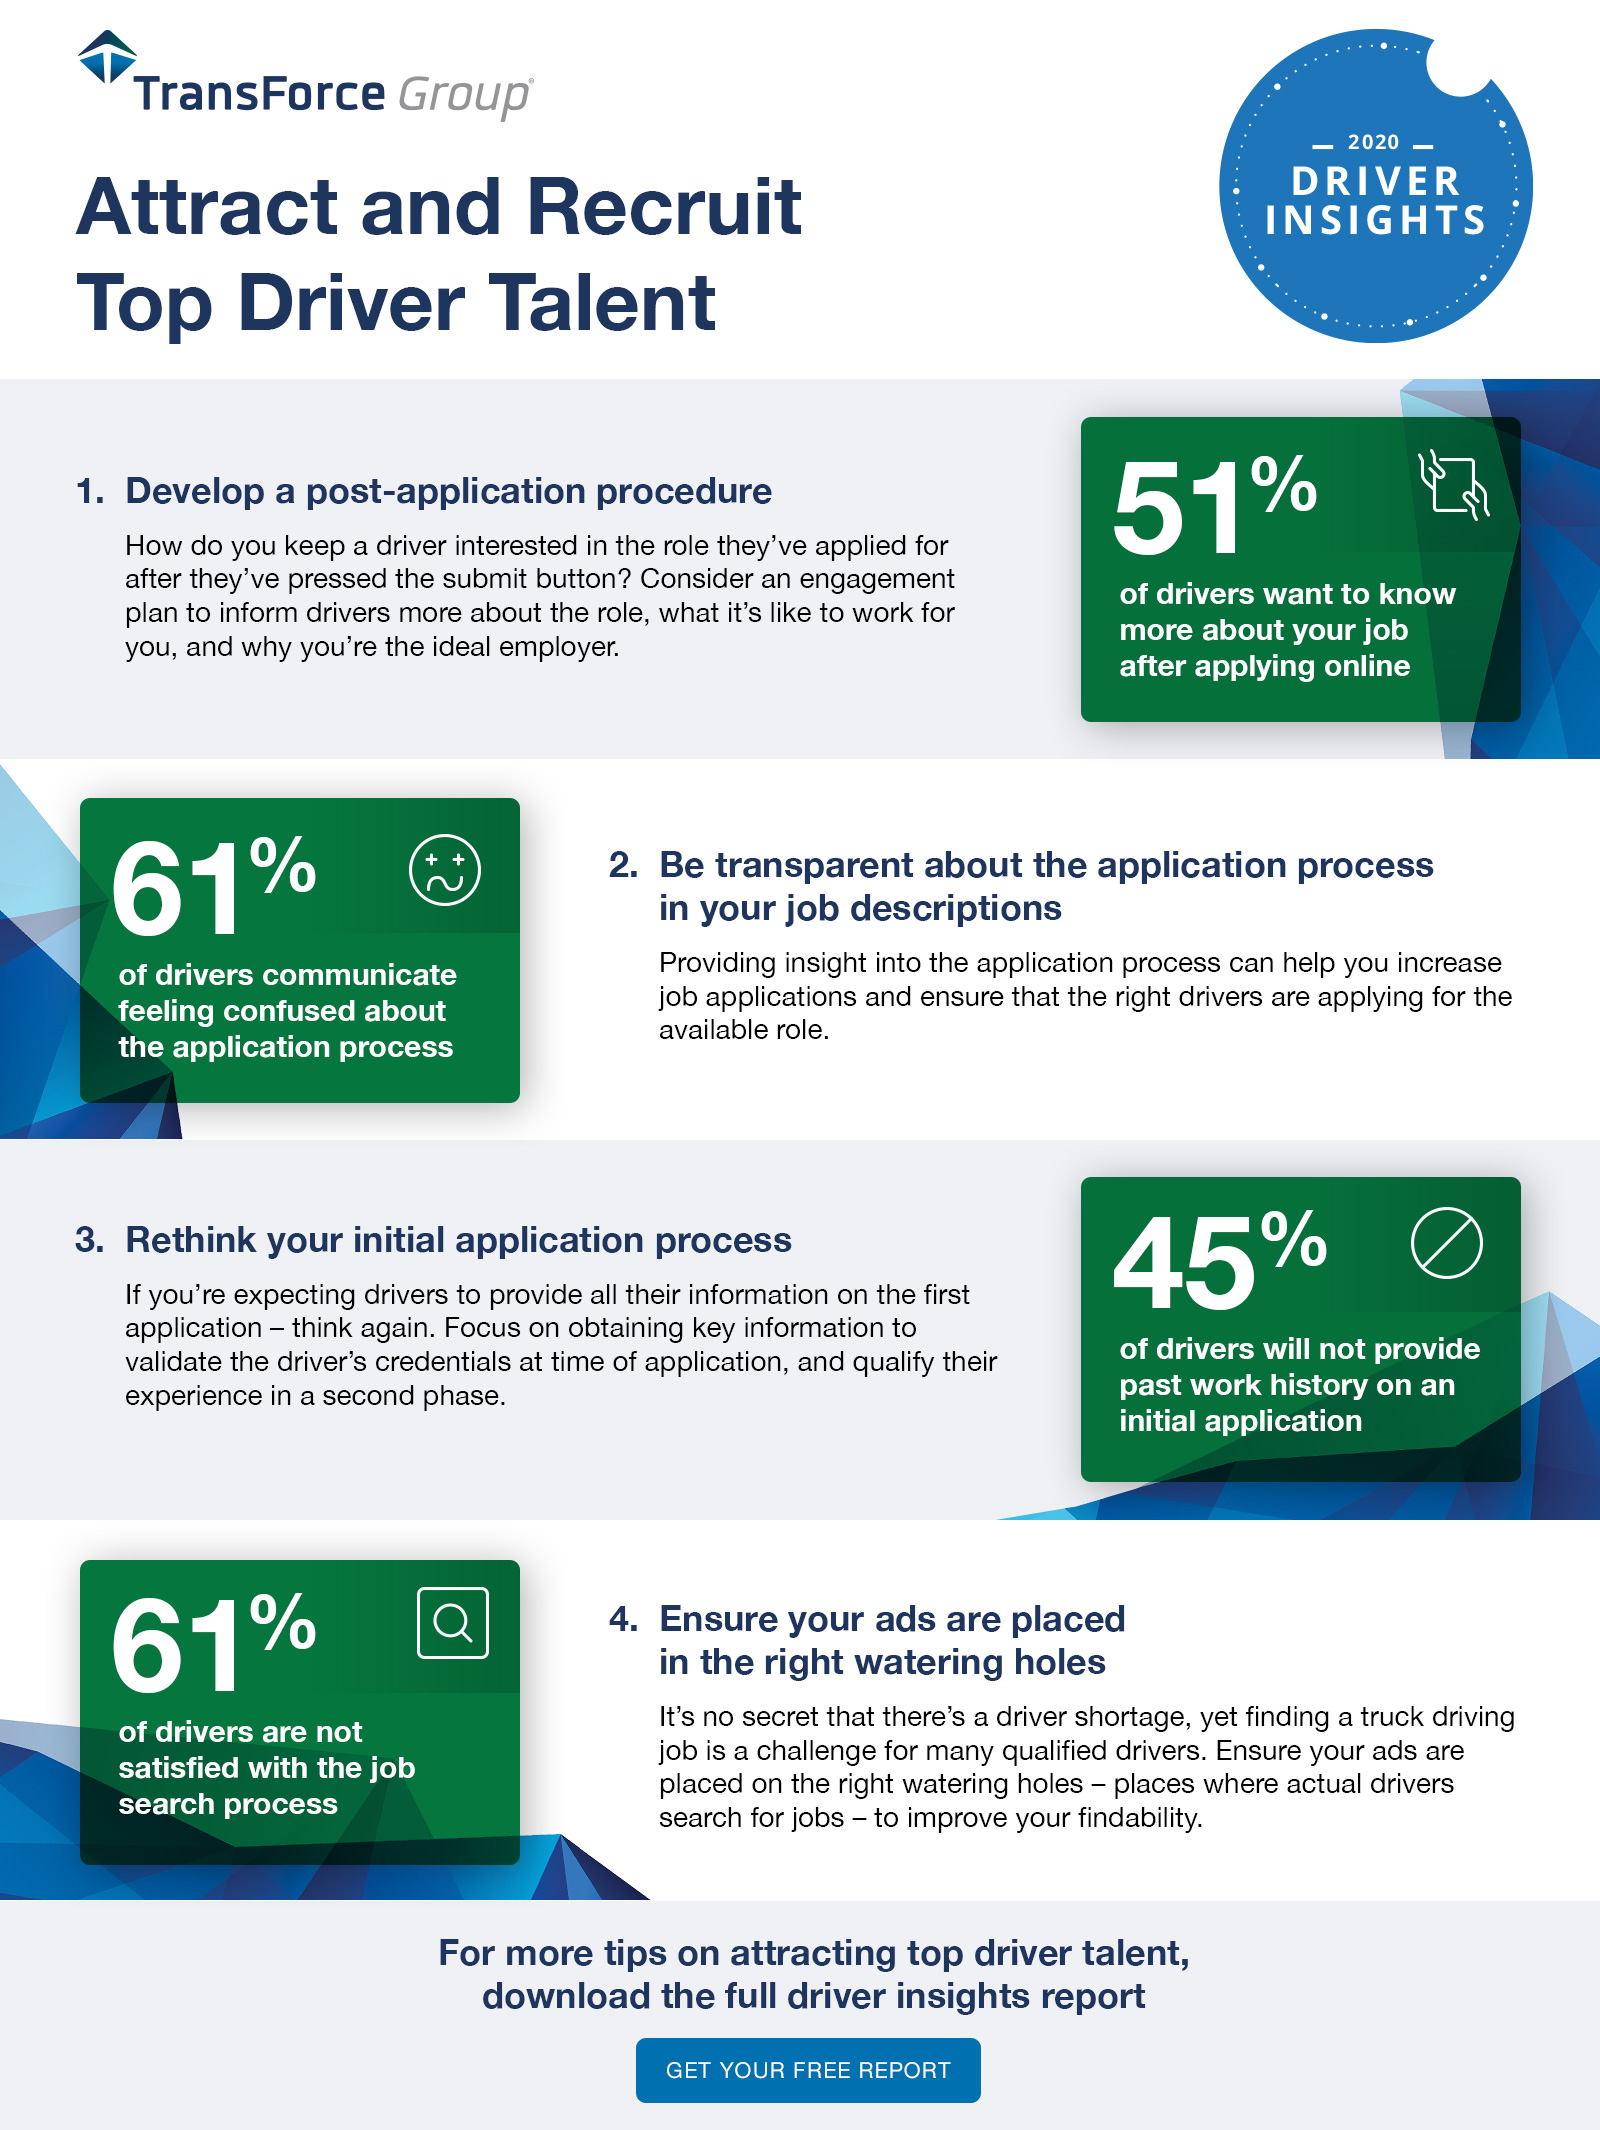 Attract and recruit driver talent - InfoGraphic